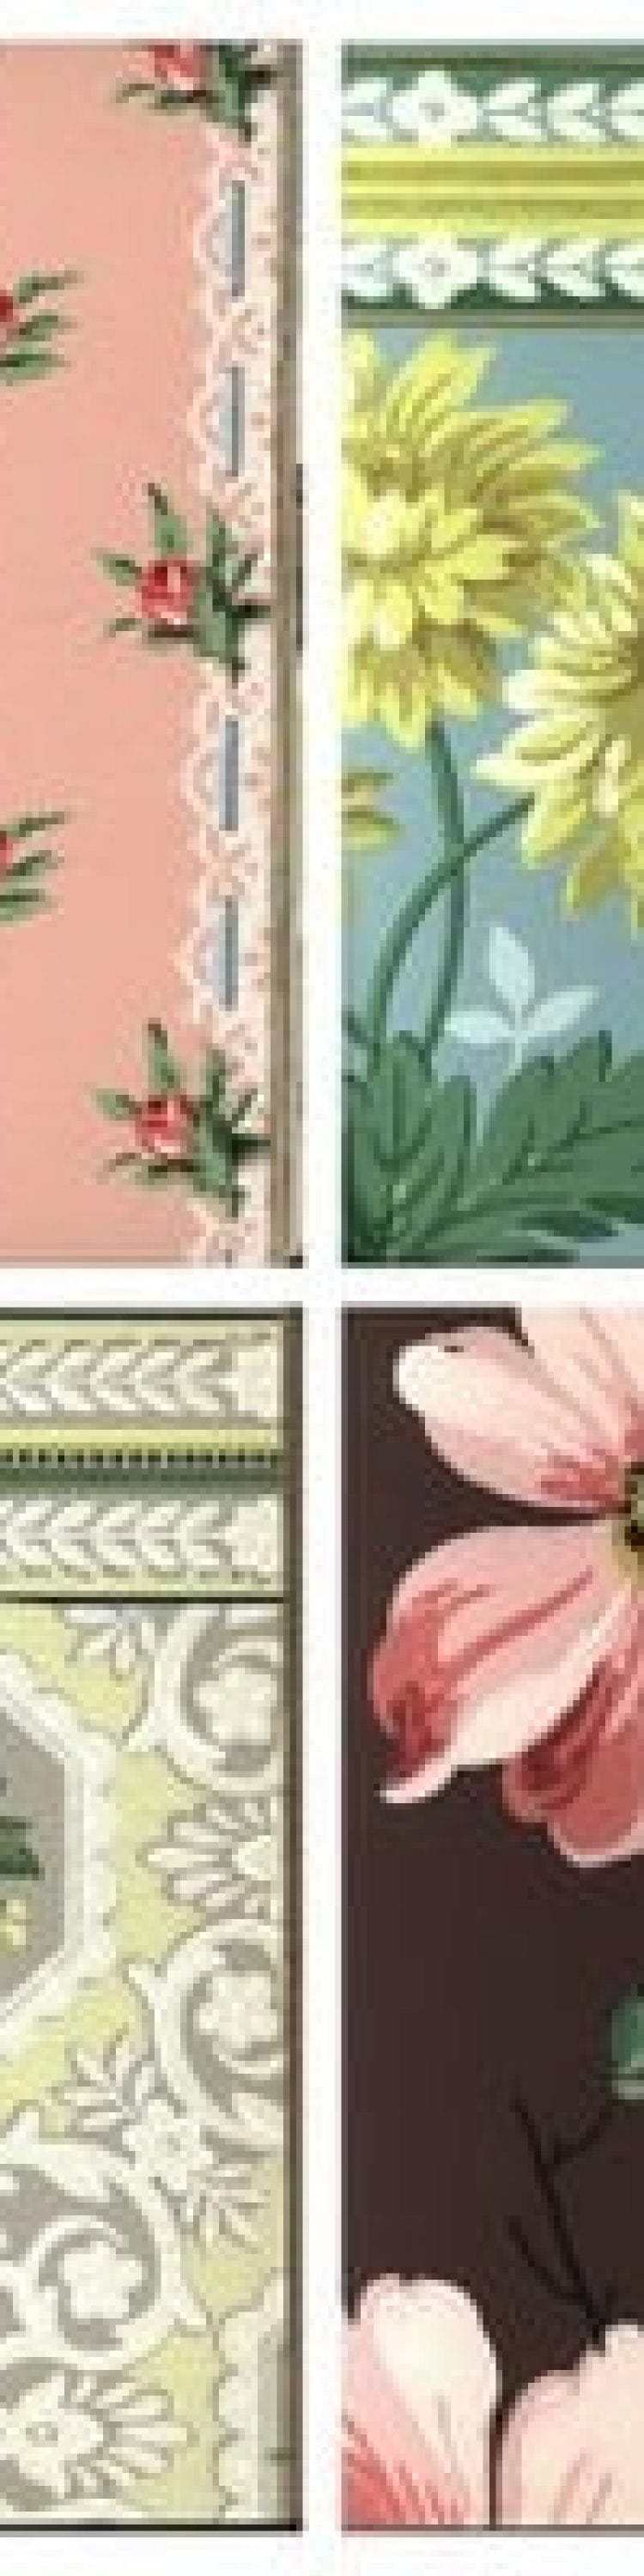 140 Vintage 1950s Wallpaper Samples For Some Real Retro Decor